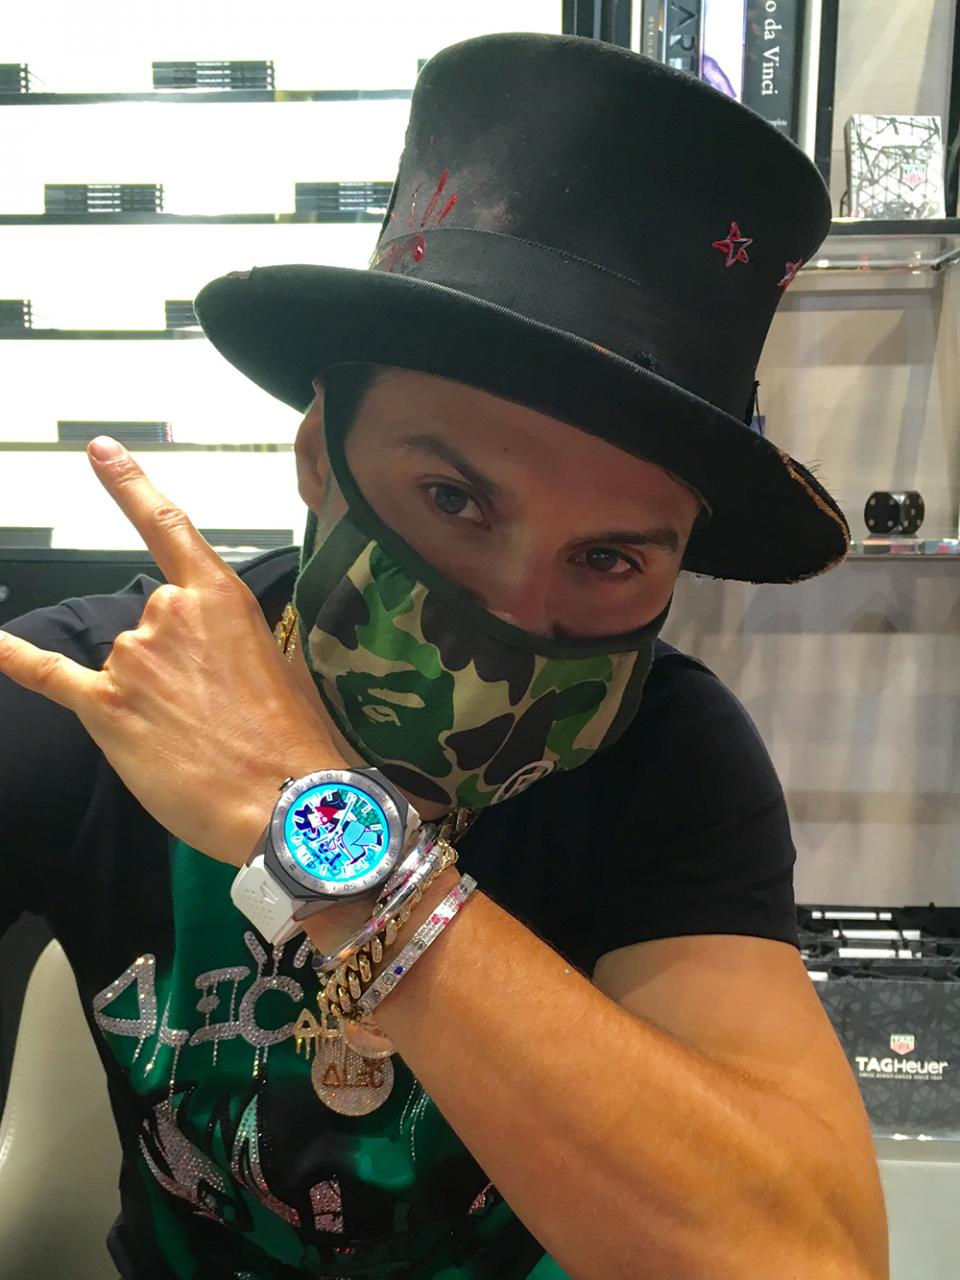 TAG Heuer Alec Monopoly Special Edition Connected Watch Unveiled At Art Basel Miami